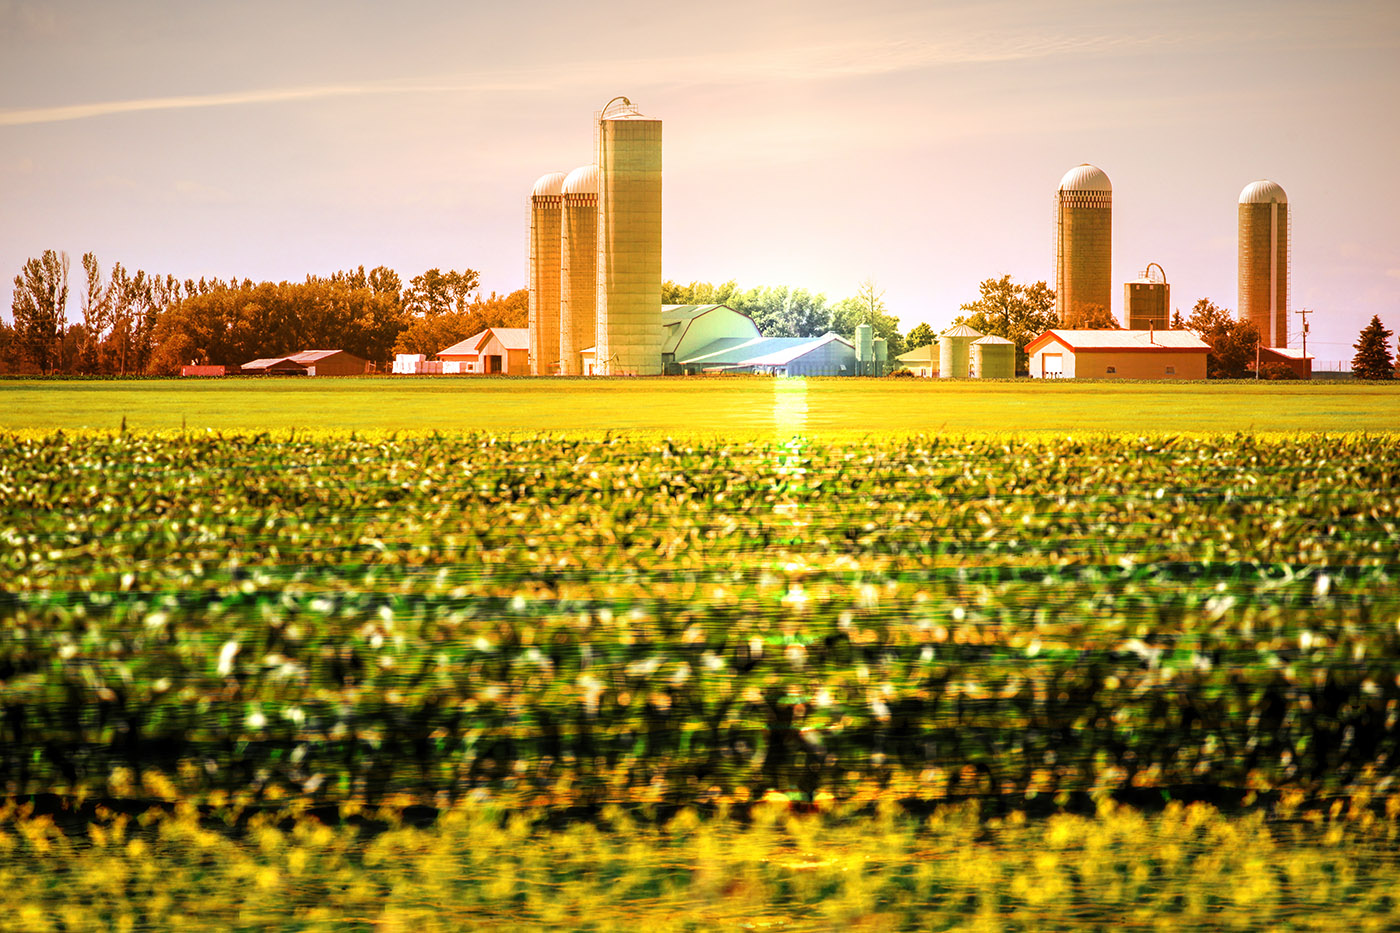 Modern Farmland and Agriculture Real Estate - Royalty-Free Stock Imagery